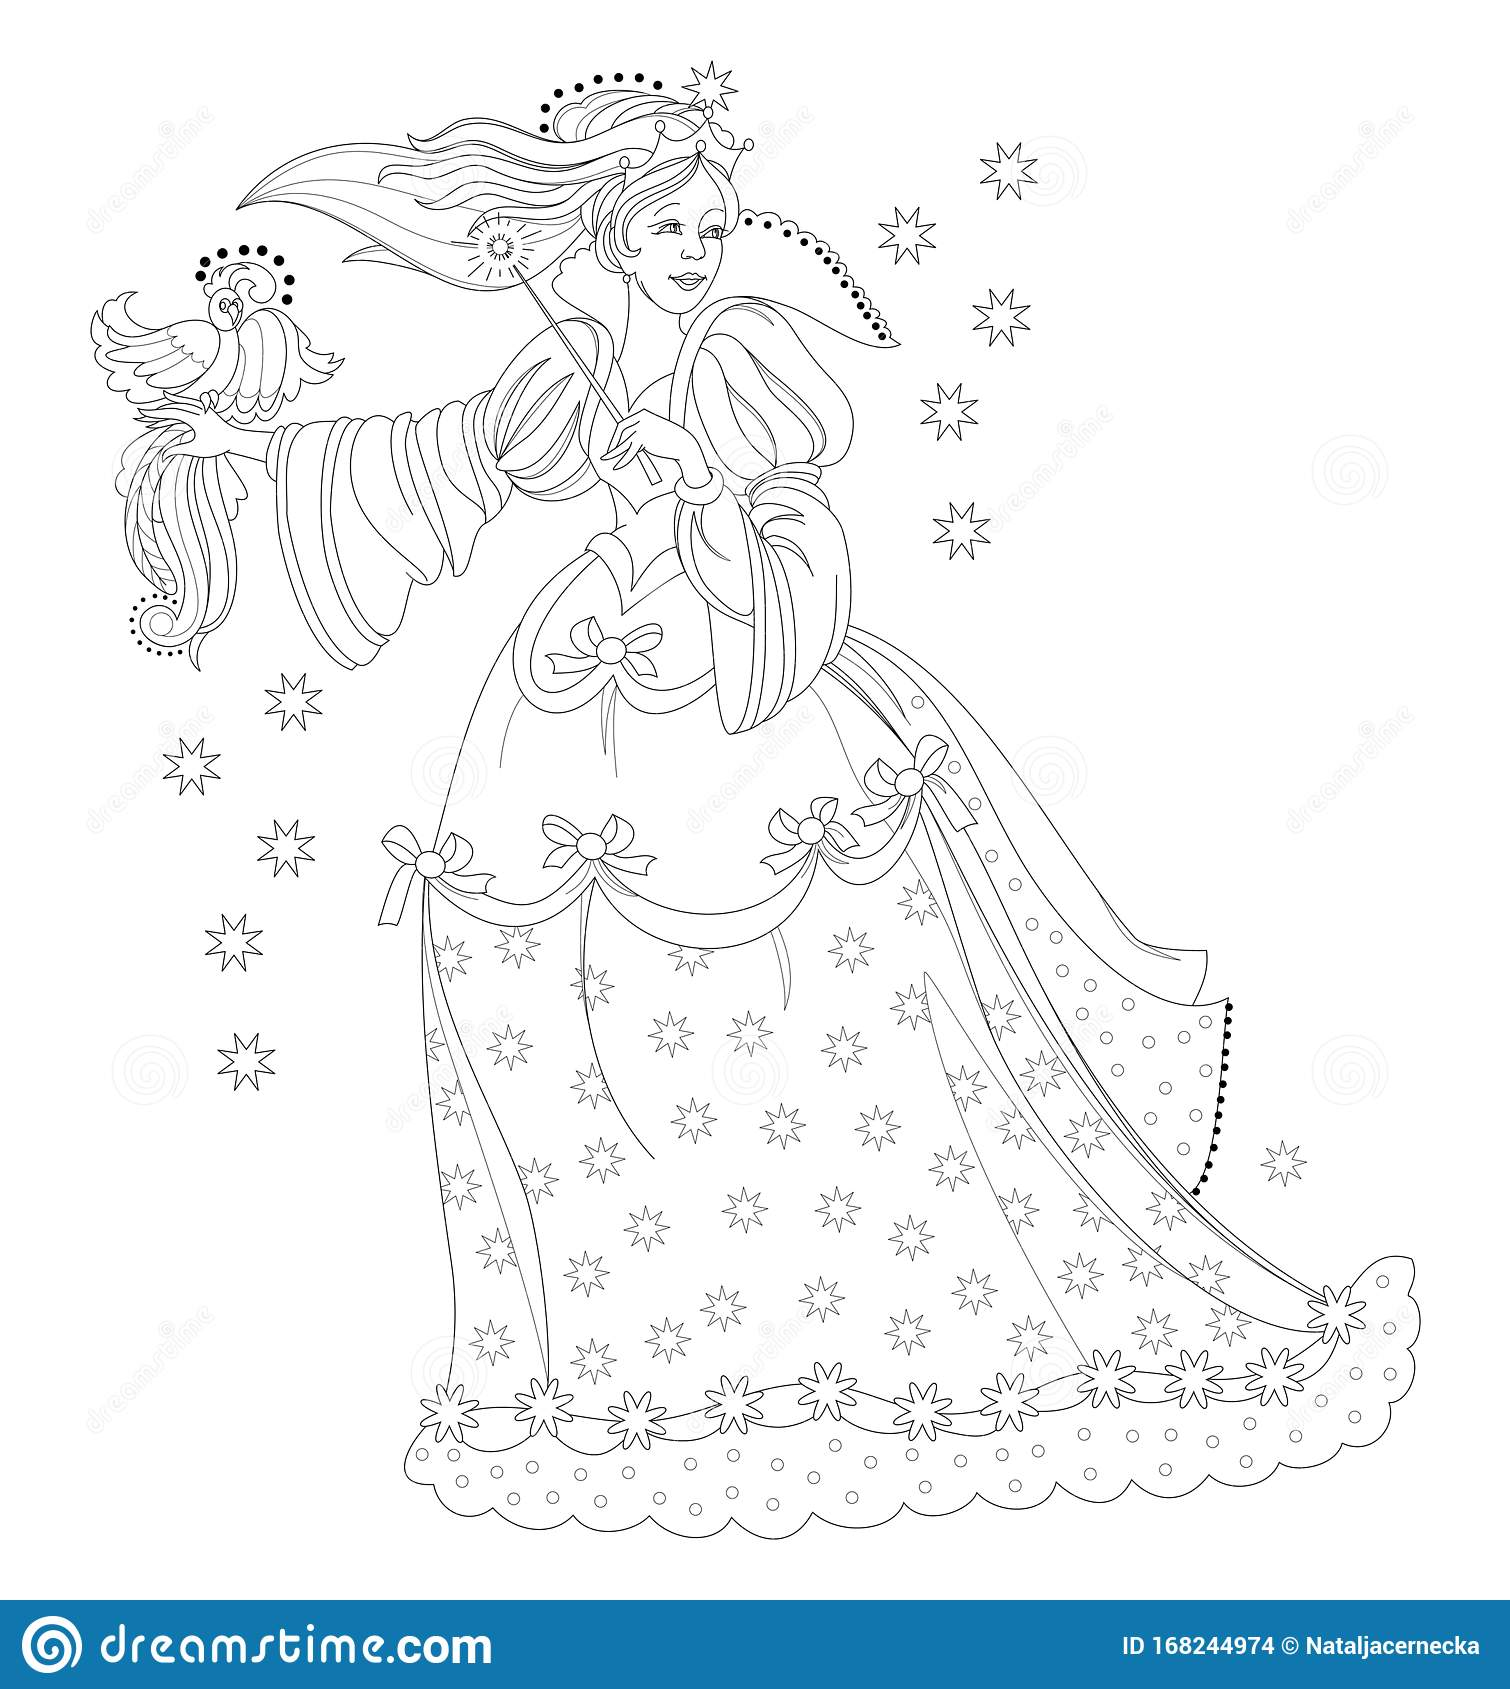 Black And White Page For Kids Coloring Book Fantasy Drawing Of Beautiful Medieval Princess With Magic Wand And Bird Stock Vector Illustration Of Dress Children 168244974